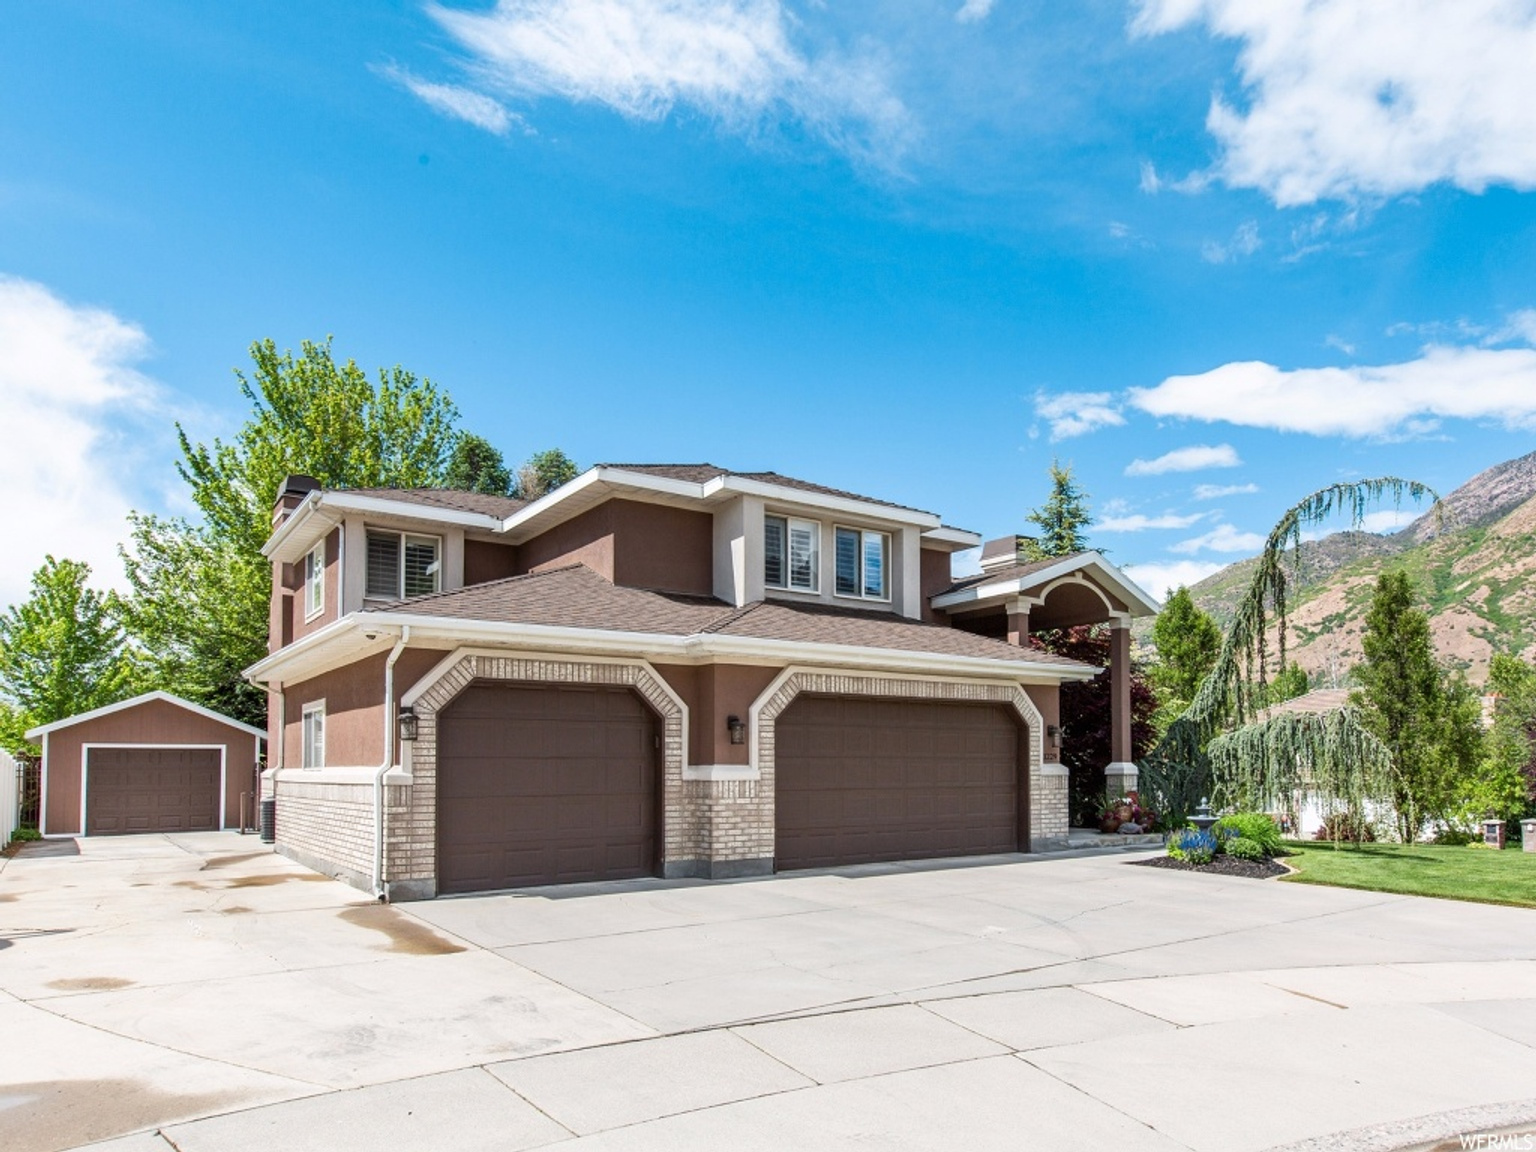 3229 E VISTA GRANDE CIR, Salt Lake City UT 84121